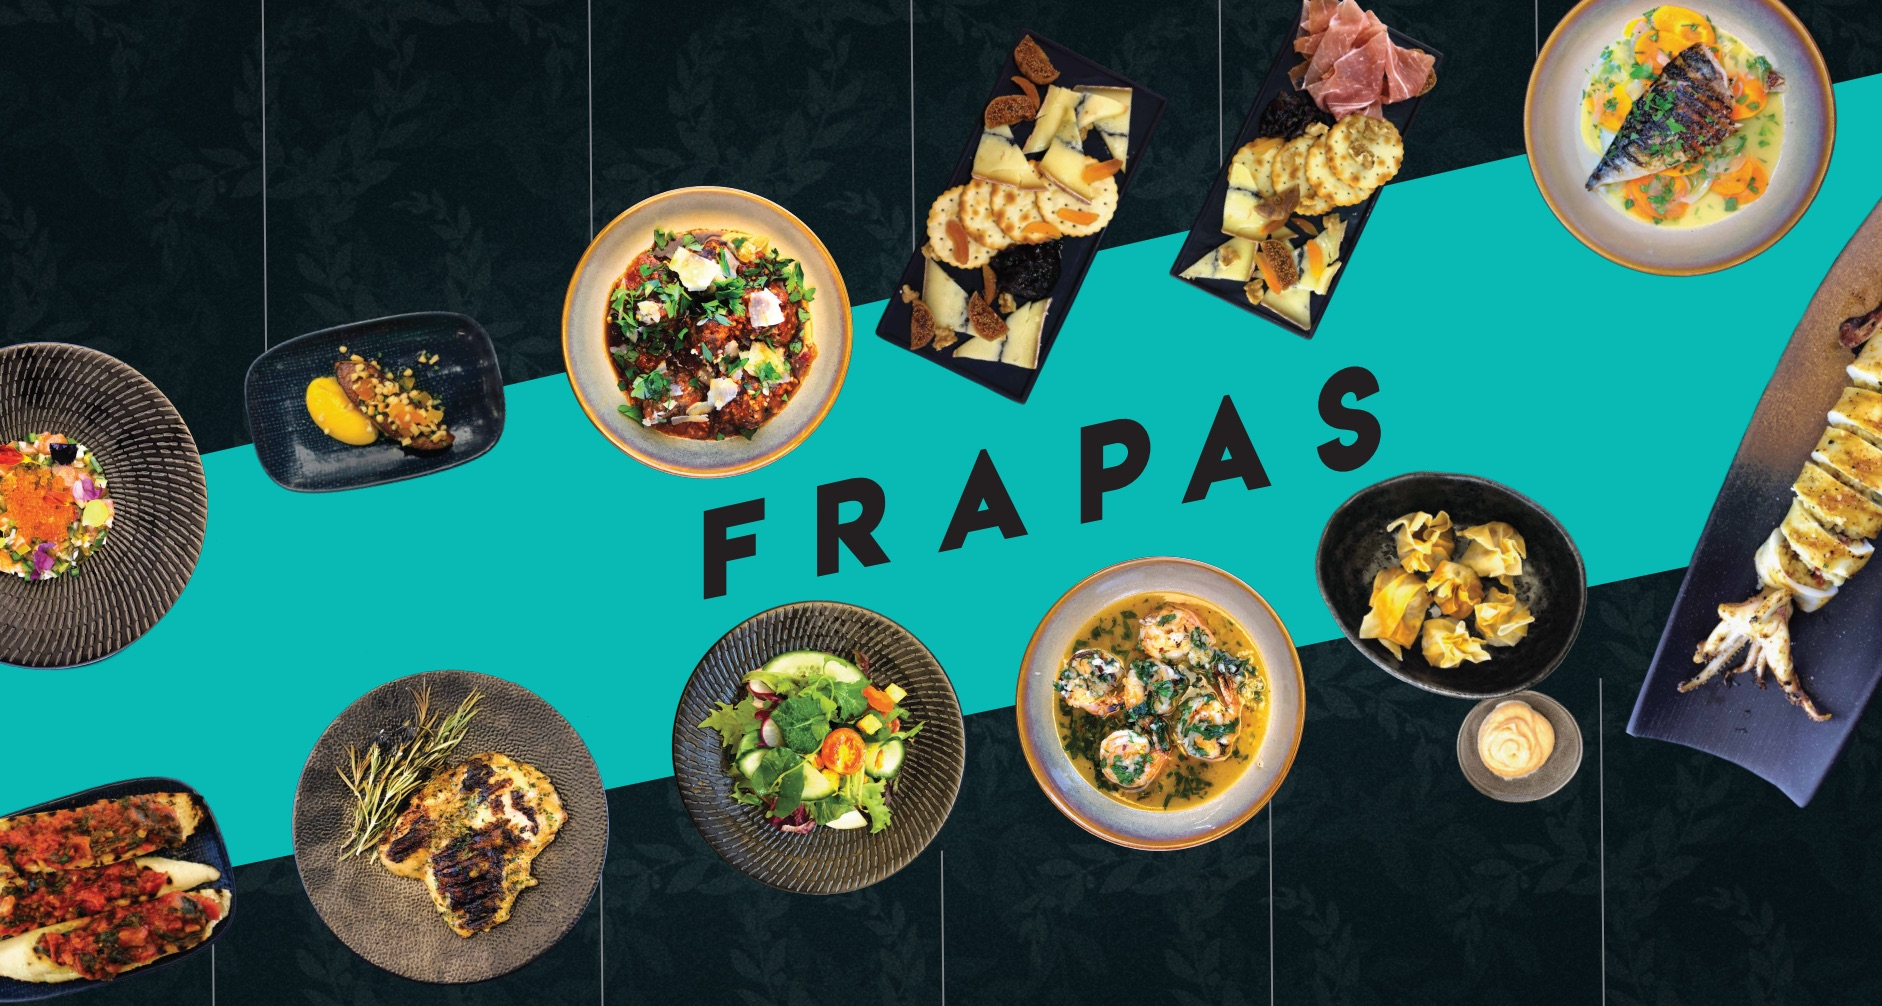 Saveur at The Cathay is now FrapasBar - offering French cuisine still, but tapas style and with a bar - Alvinology